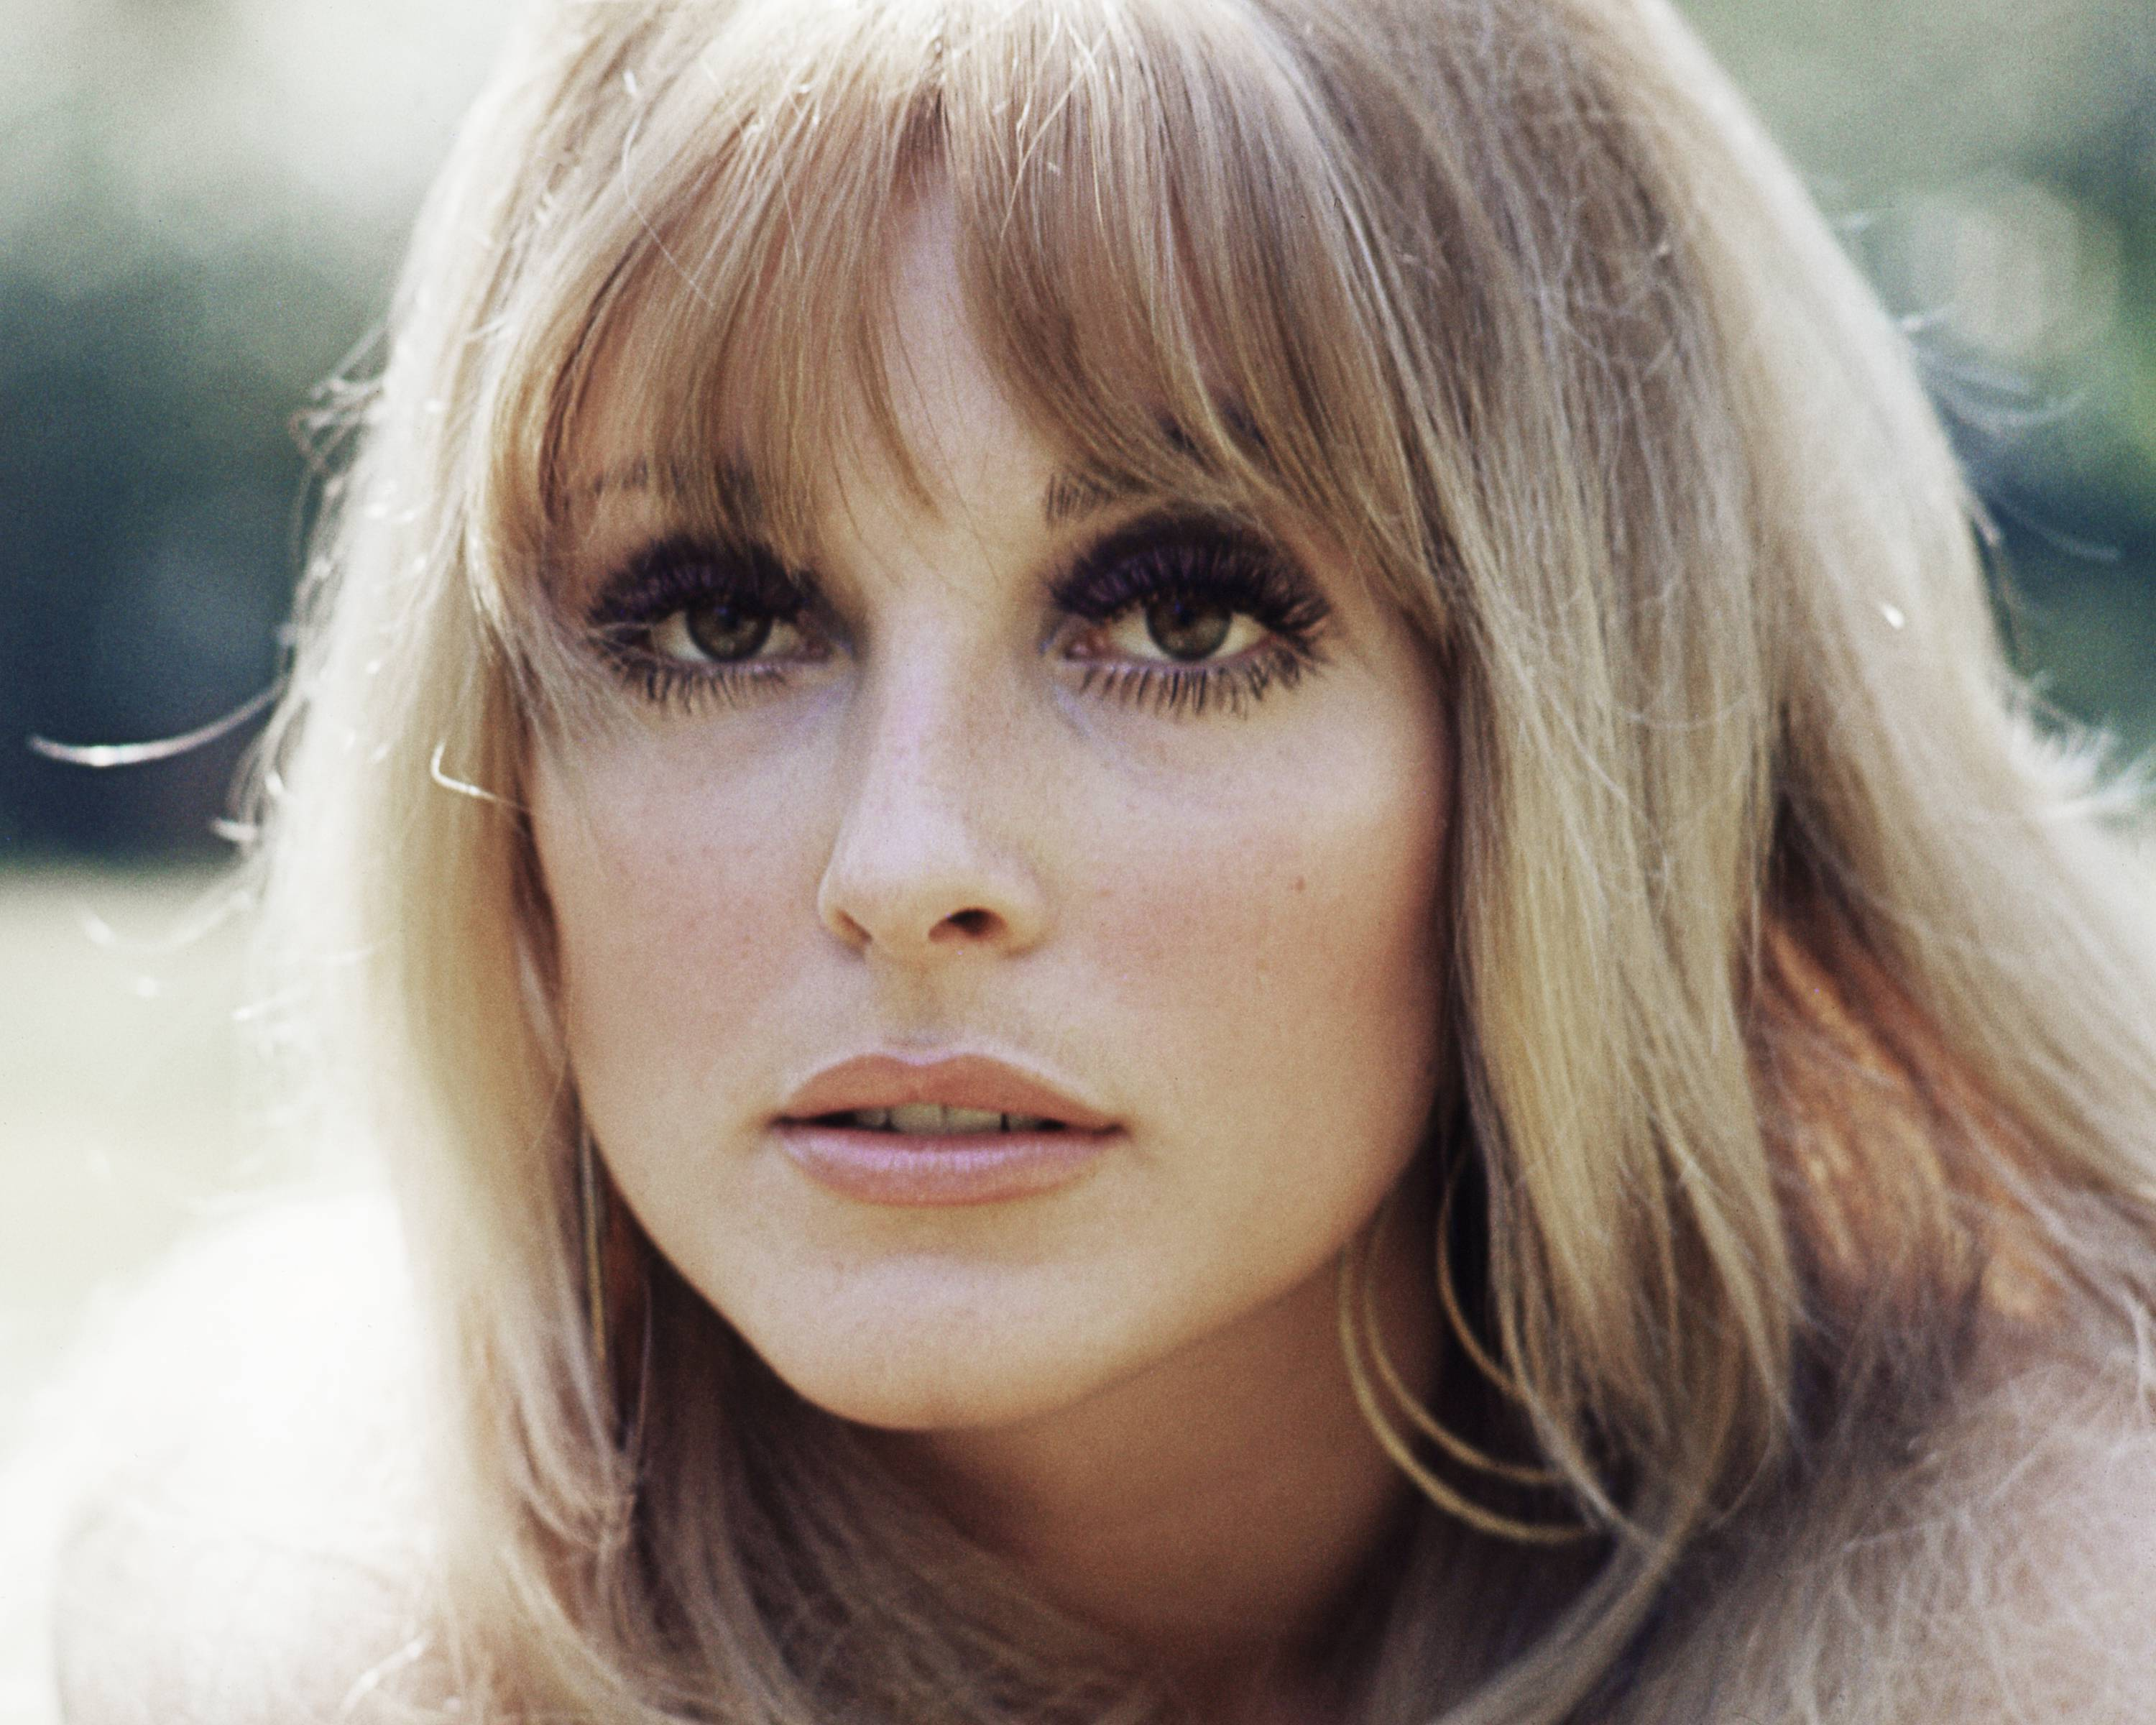 The actress Sharon Tate, circa 1965. In 1969, Tate was murdered by followers of Charles Manson. Those followers now seek parole.